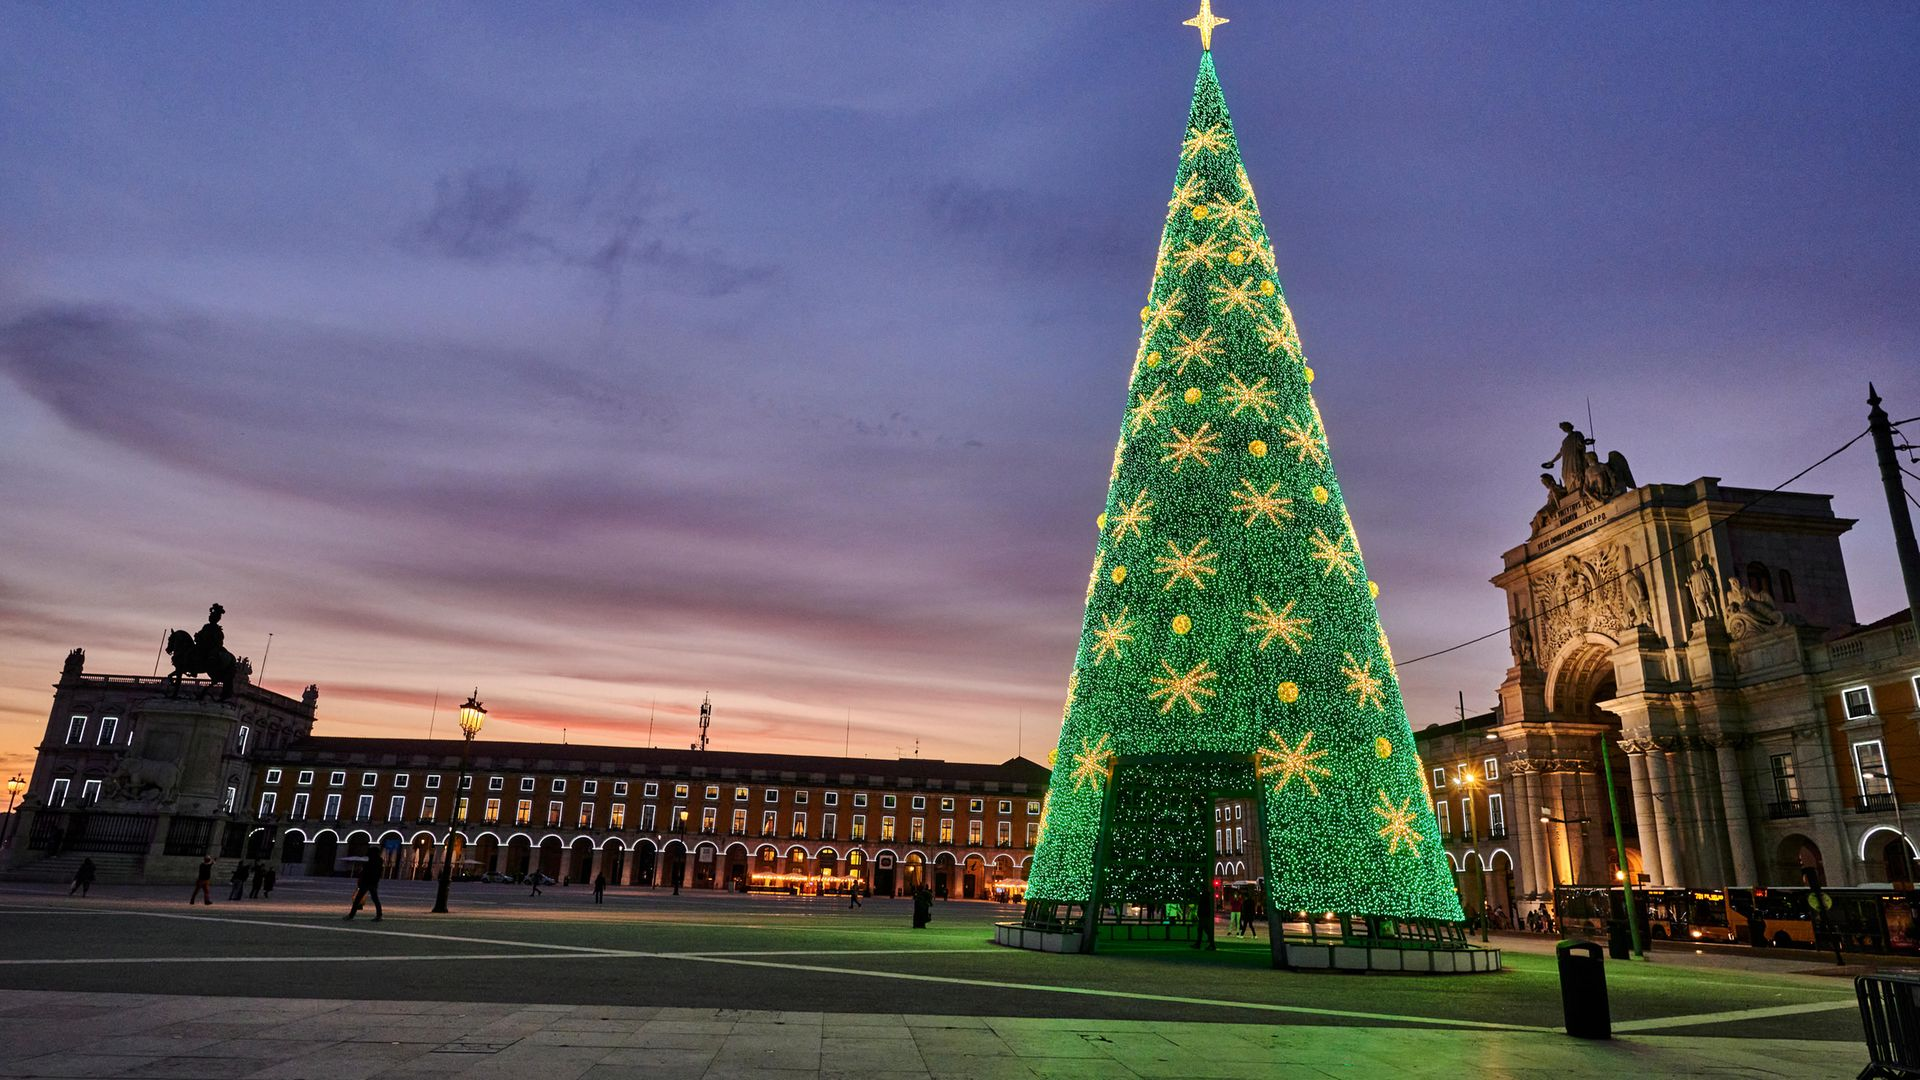 An almost deserted Praca do Comercio. The prospect of travel is one of the causes for hope this winter - Credit: Corbis via Getty Images